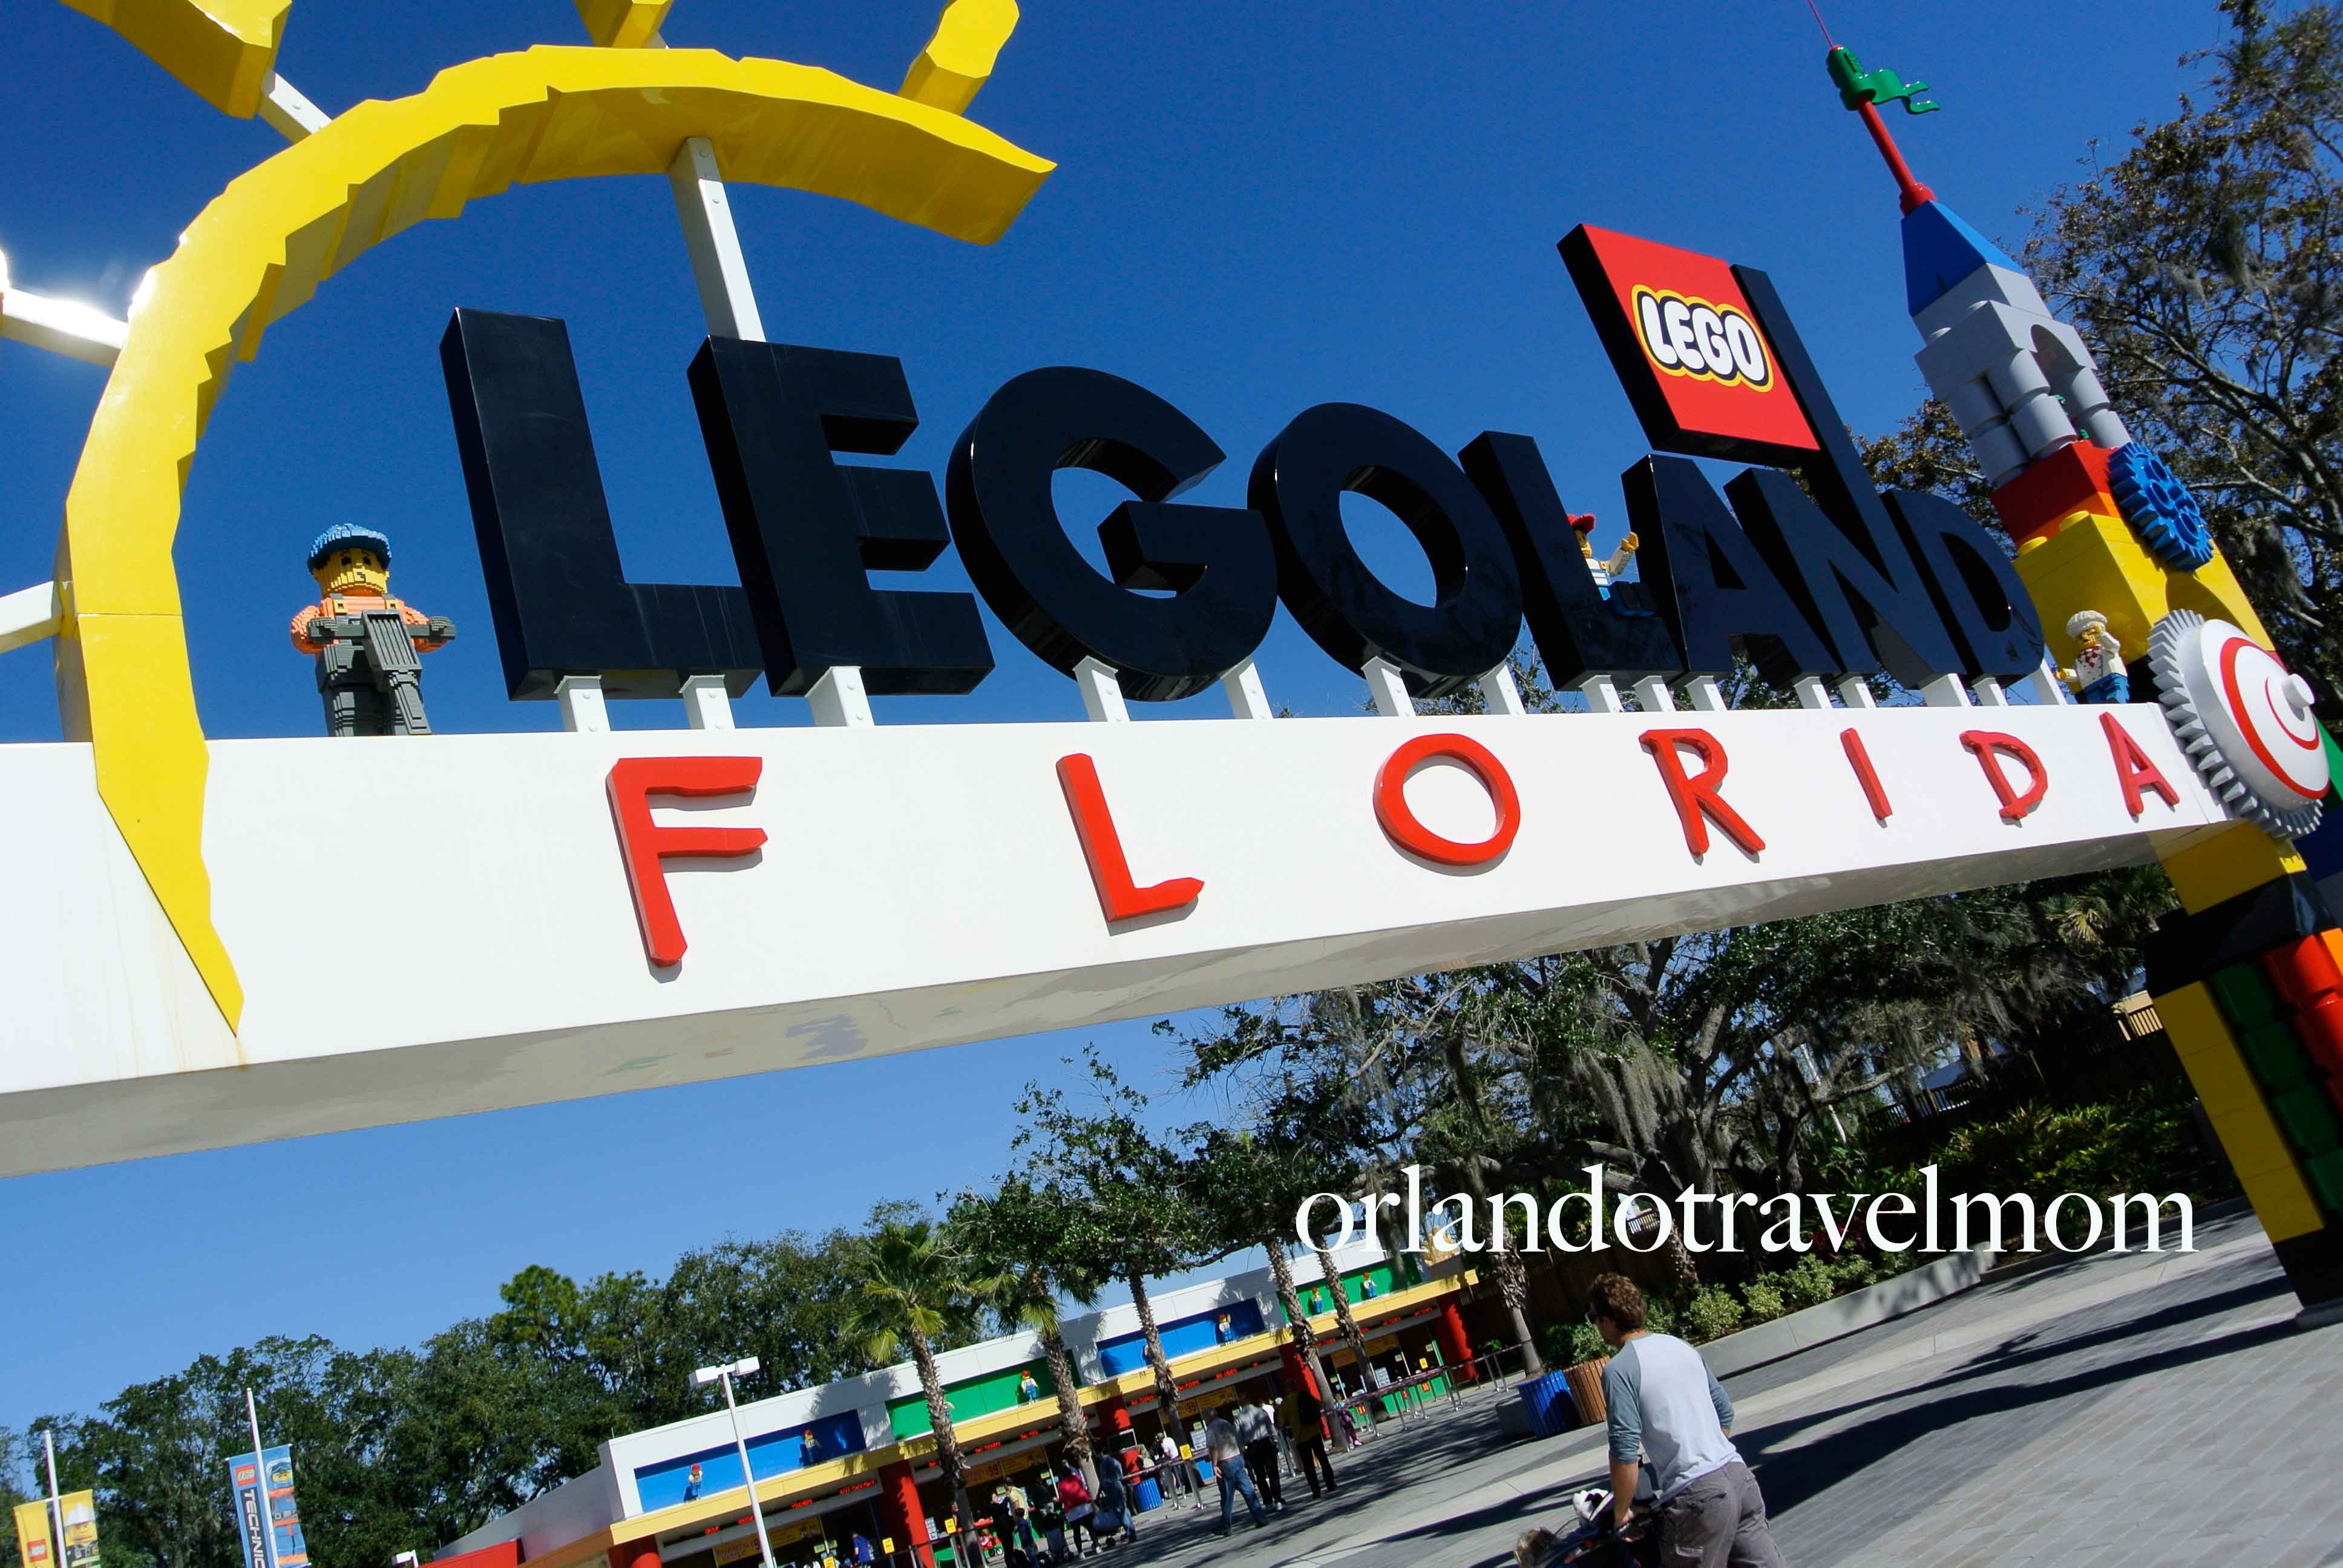 legoland florida tickets for only 30 must buy online and use before sept 27 orlando travel mom. Black Bedroom Furniture Sets. Home Design Ideas